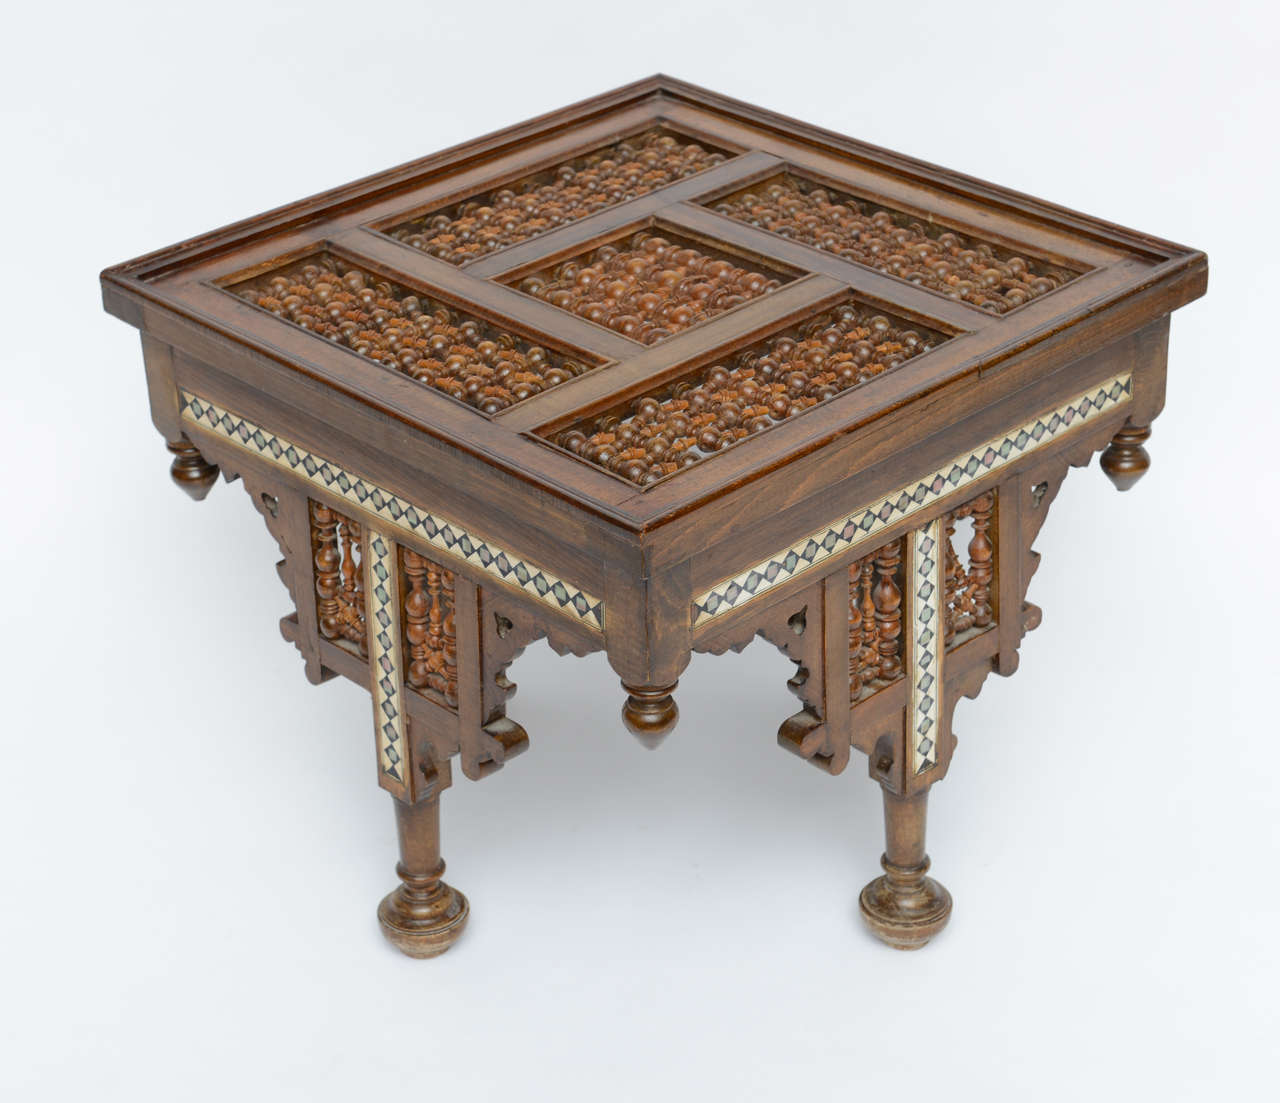 Moroccan Table Inlaid with Bone & Ivory, 19th Century image 4